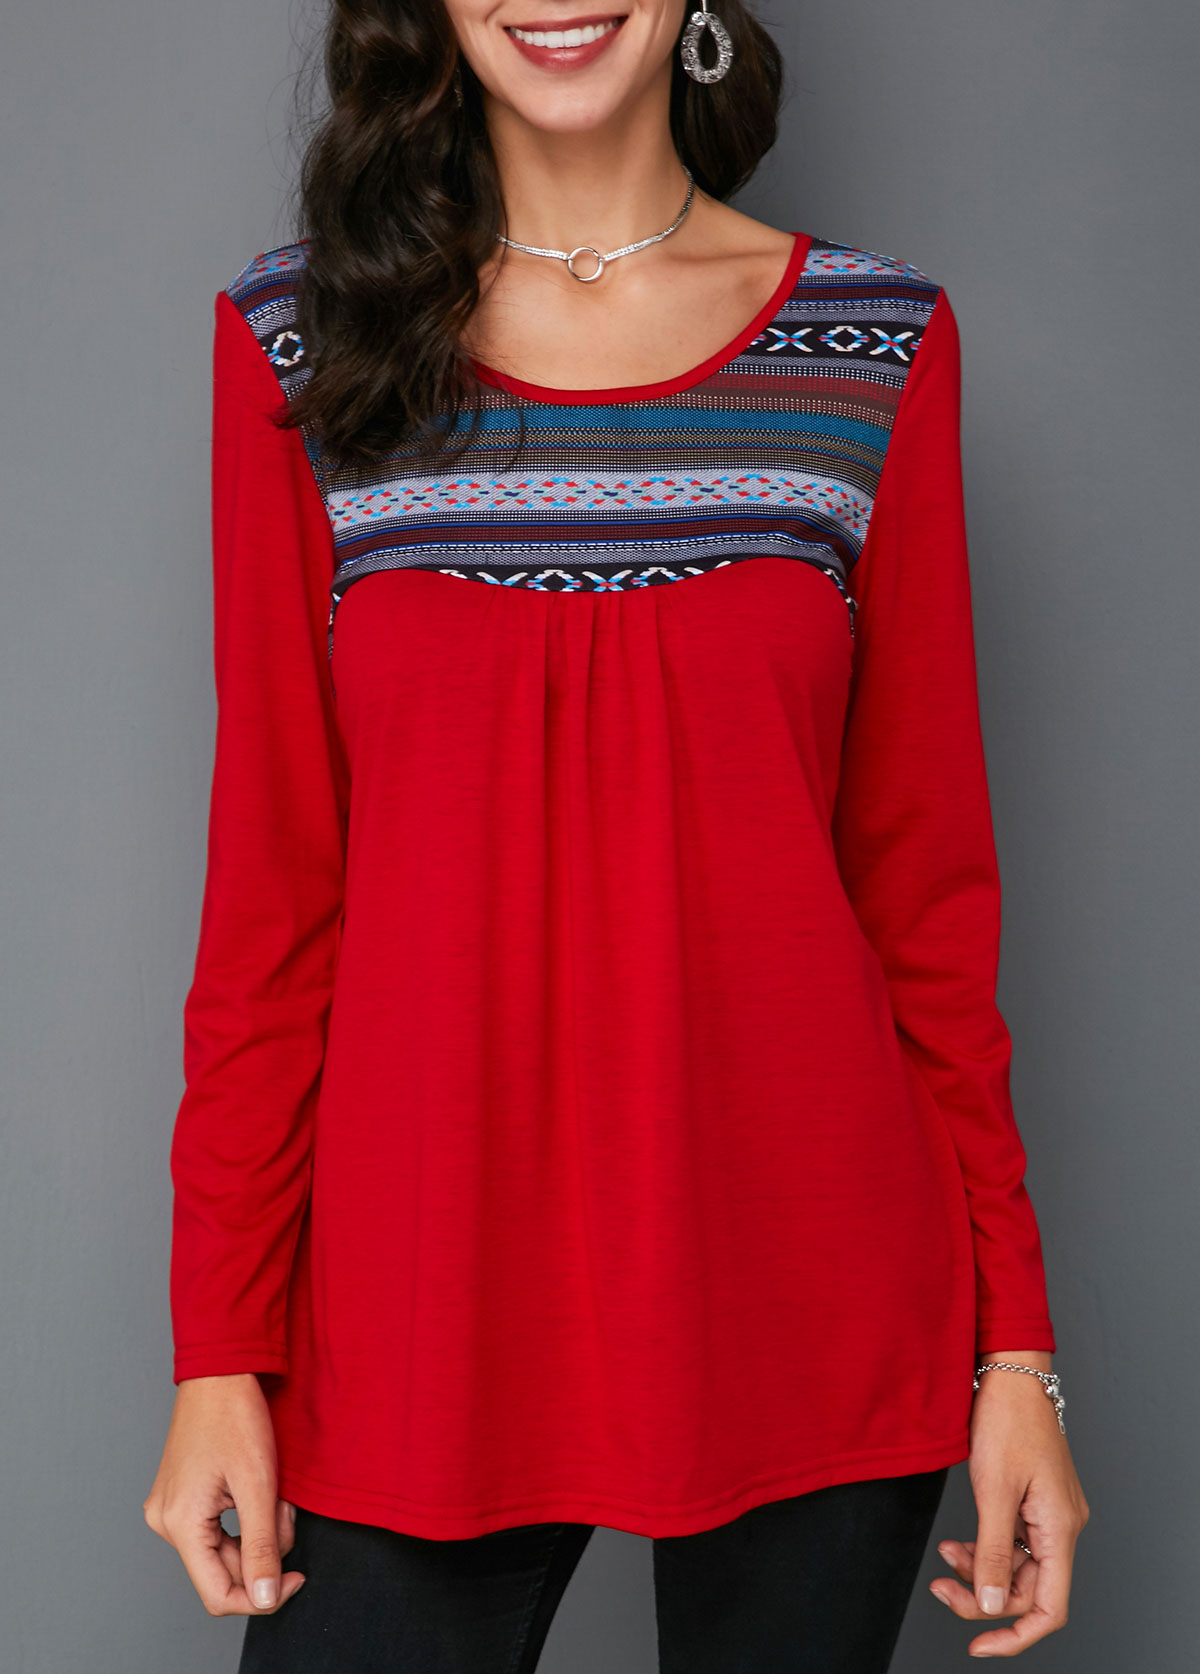 Printed Round Neck Red Long Sleeve T Shirt